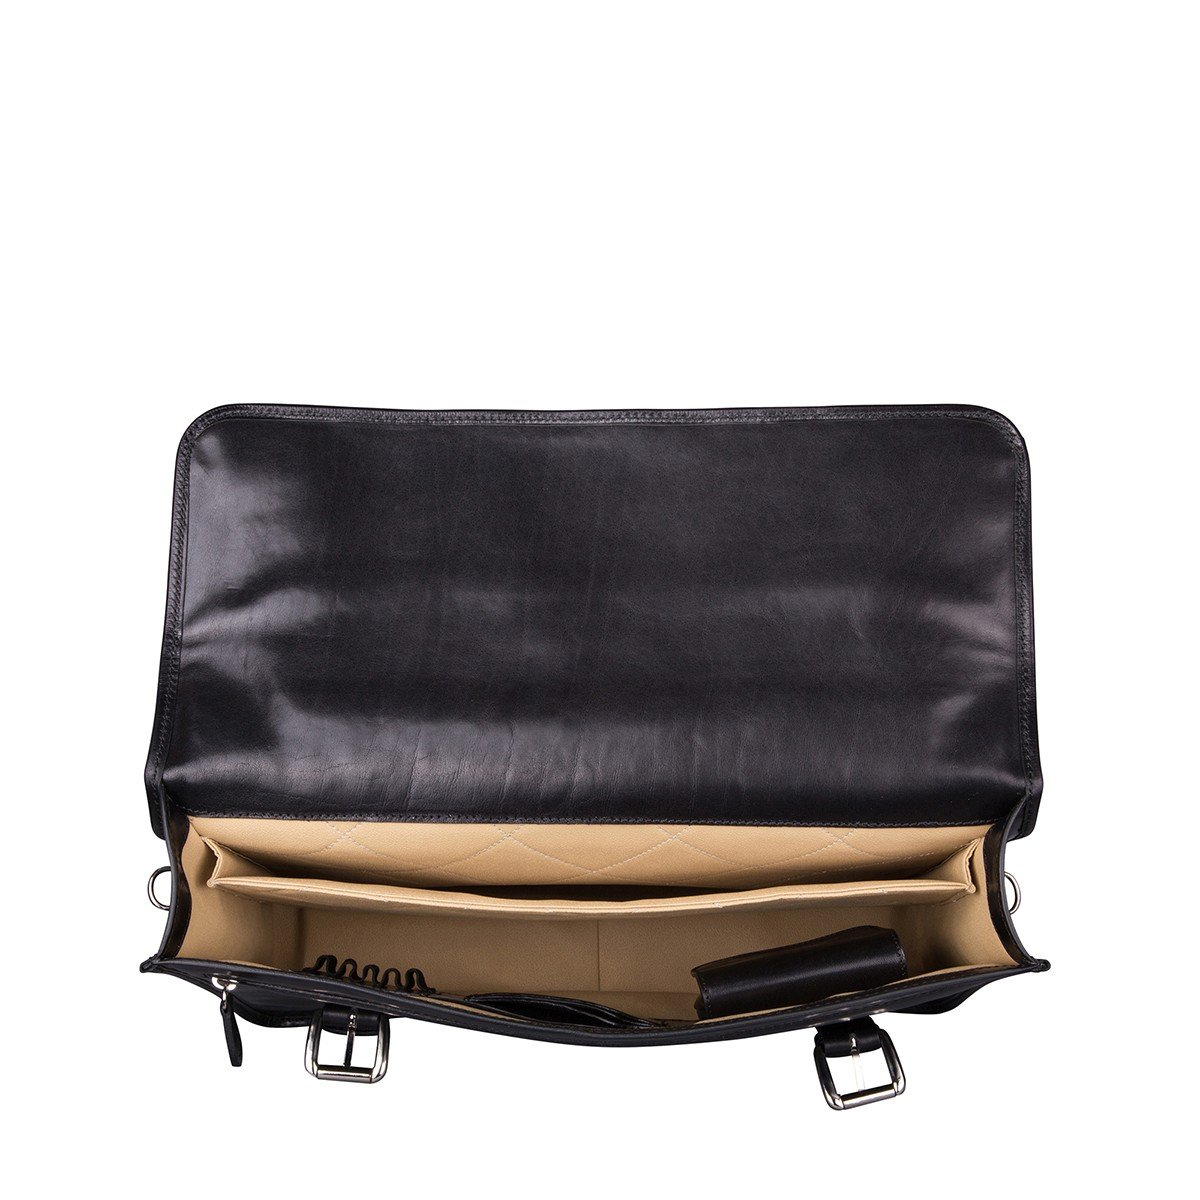 Maxwell Scott Mens Black Leather Backpack Briefcase (Micheli) by Maxwell Scott Bags (Image #5)